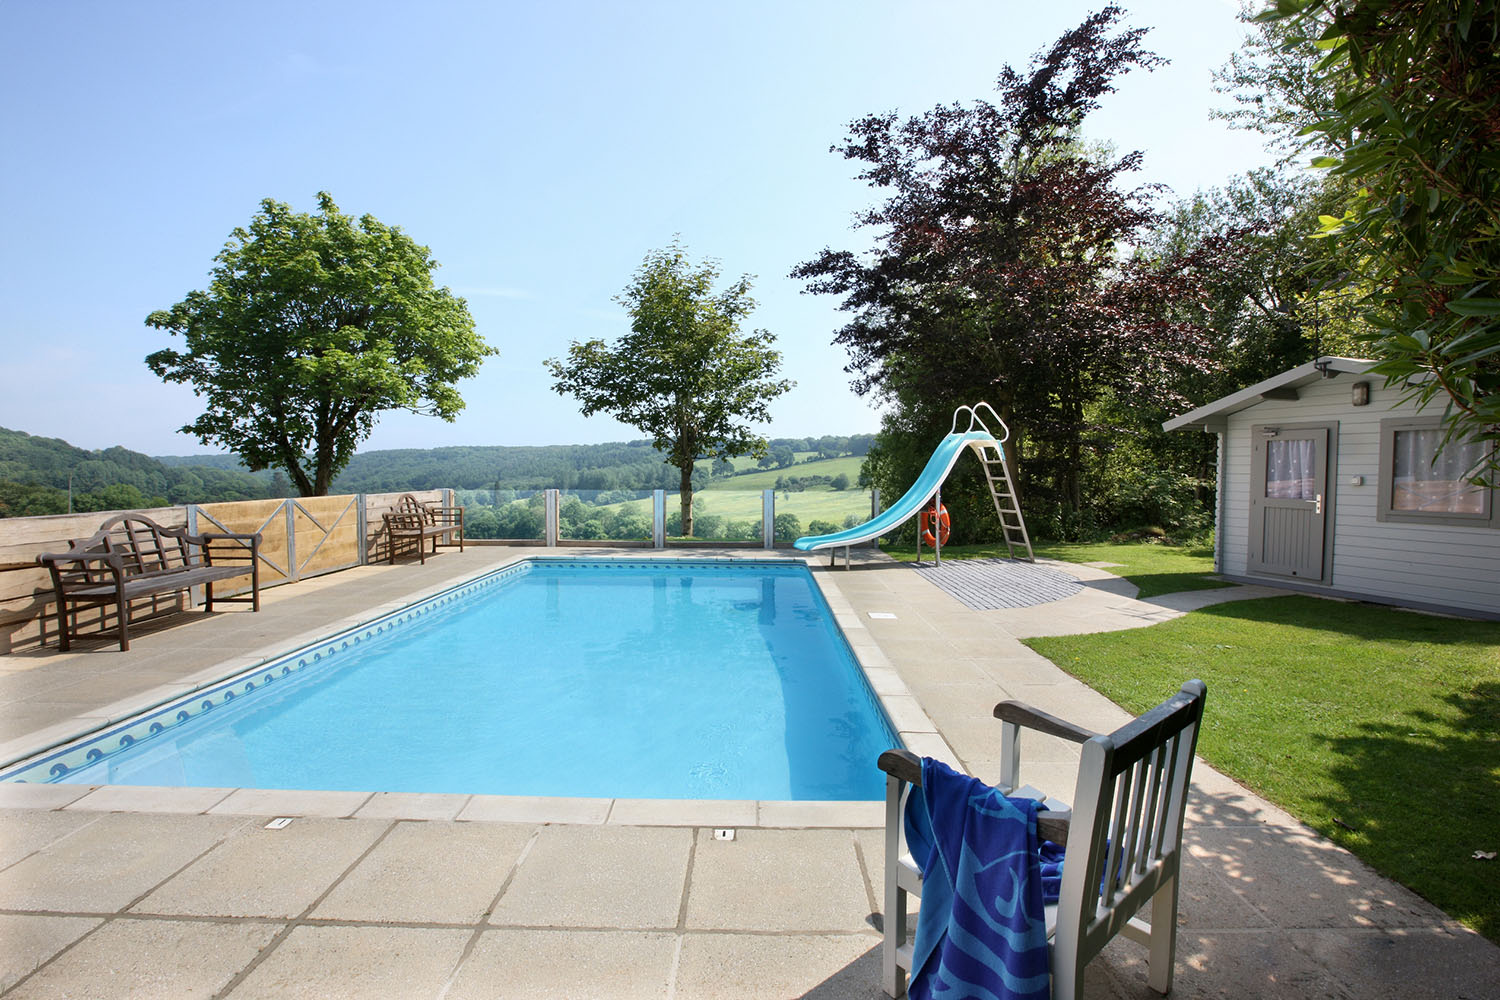 Higher Wiscombe Luxury Cottages In Devon Rentals Accommodation Luxury Travel Diary